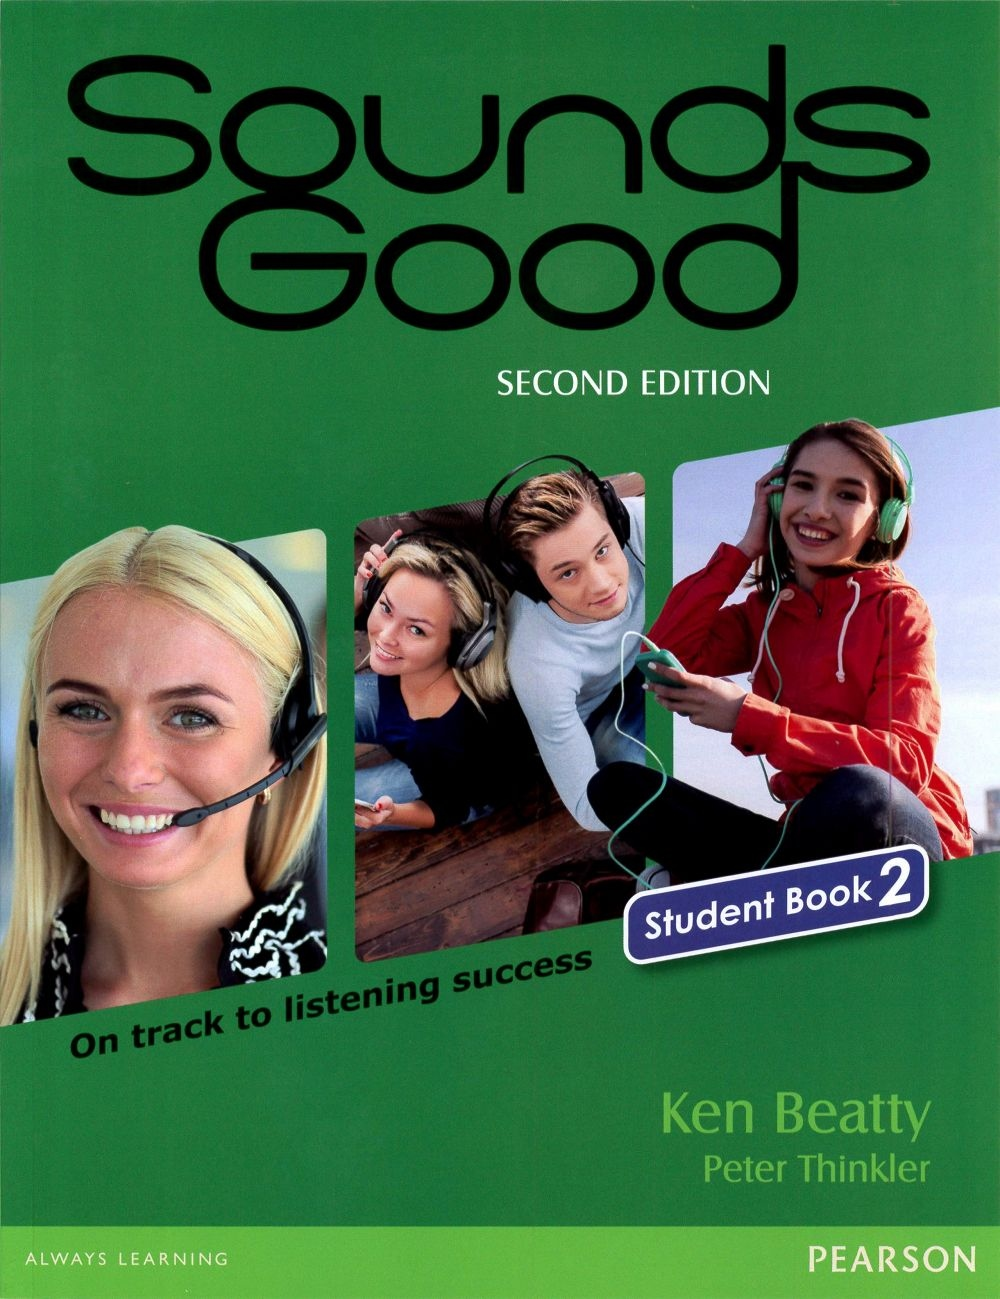 Sounds Good 2/e (2) Student Book